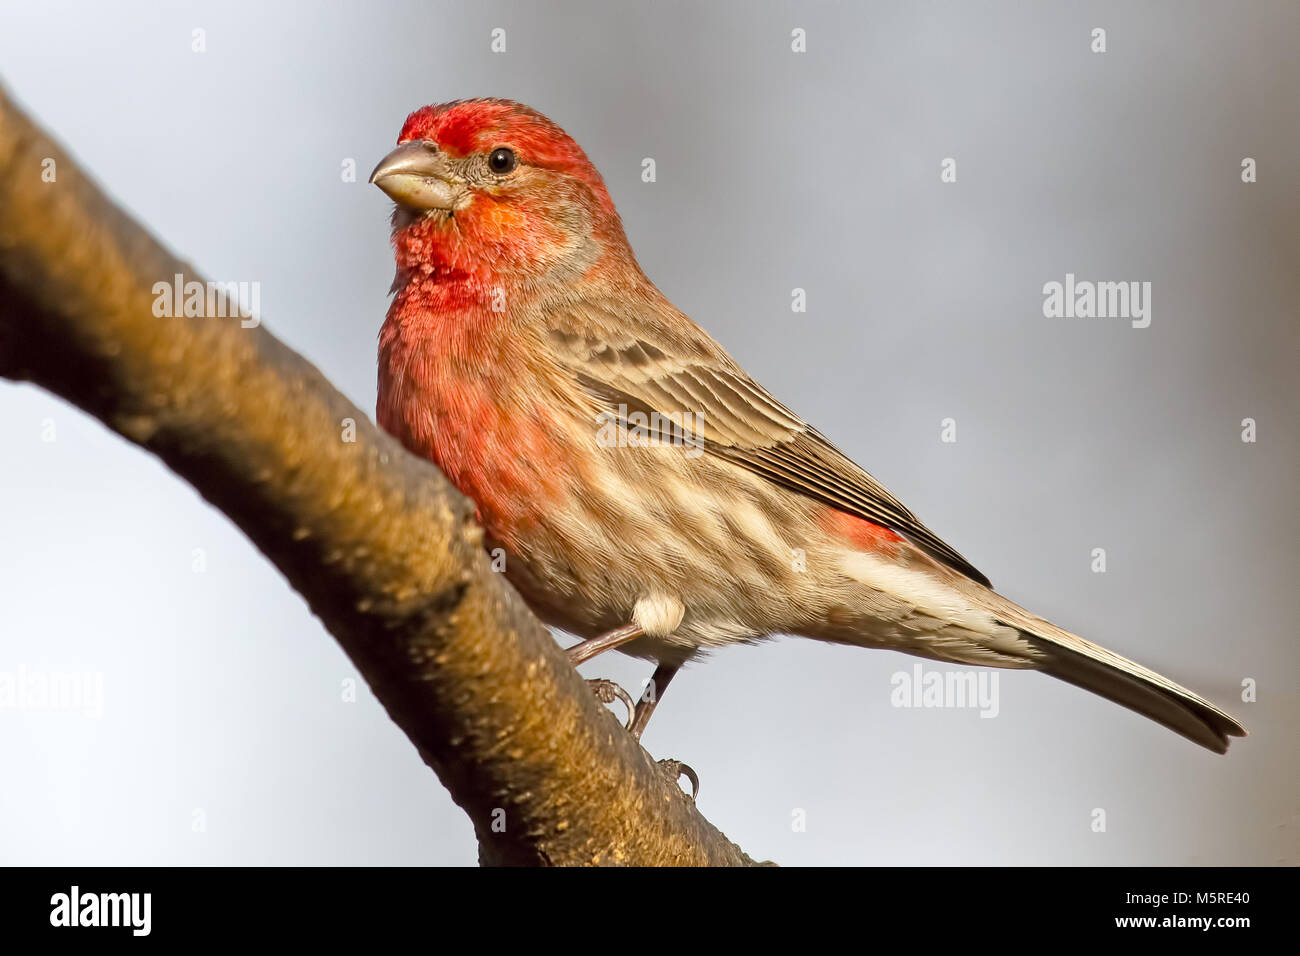 Male House Finch - Stock Image